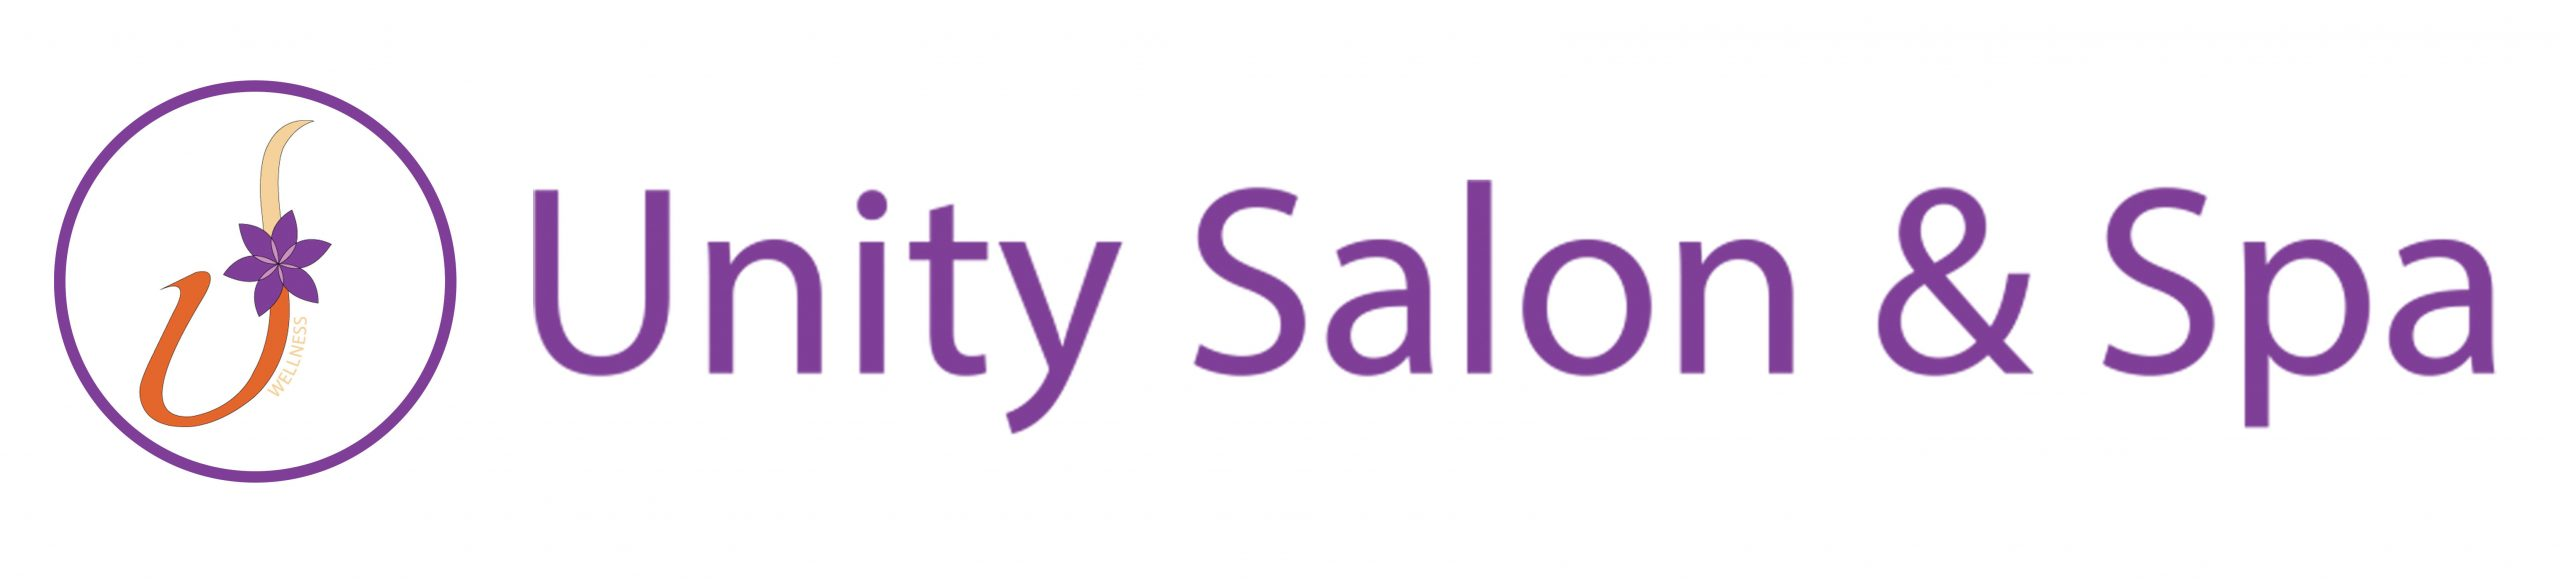 Unity Salon & Spa